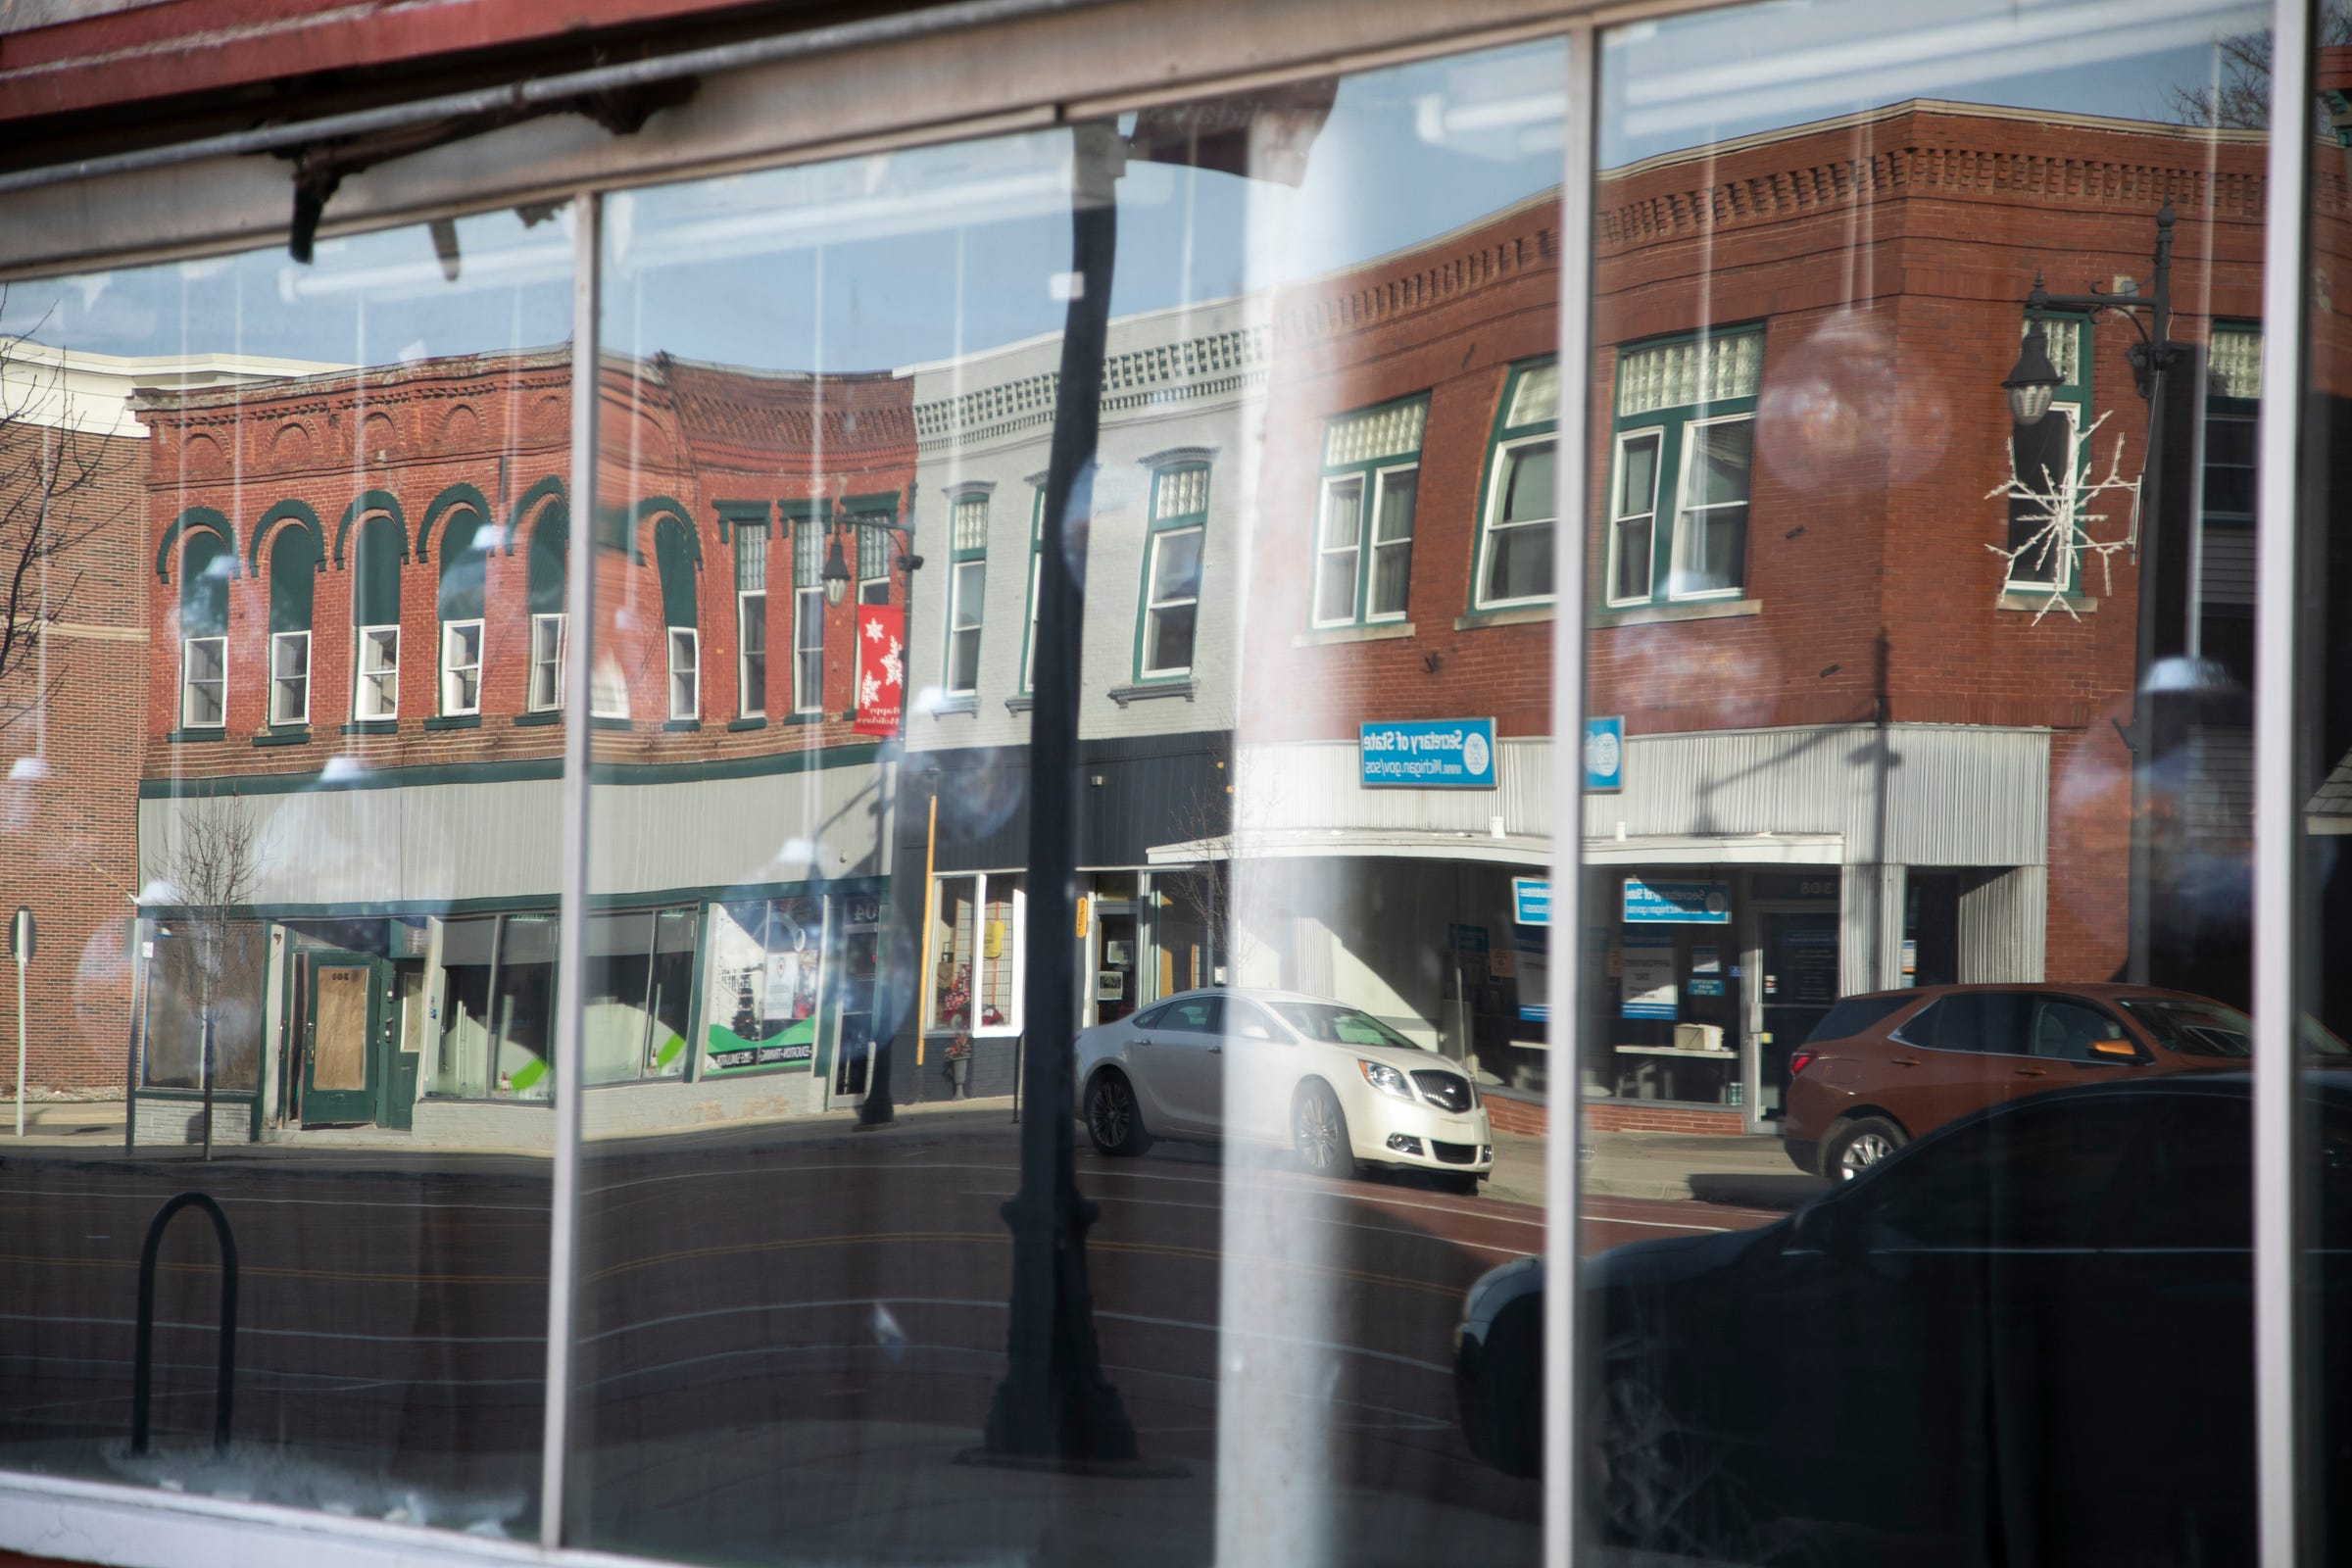 Buildings reflect in an empty storefront on S. Superior Street in December in Albion.